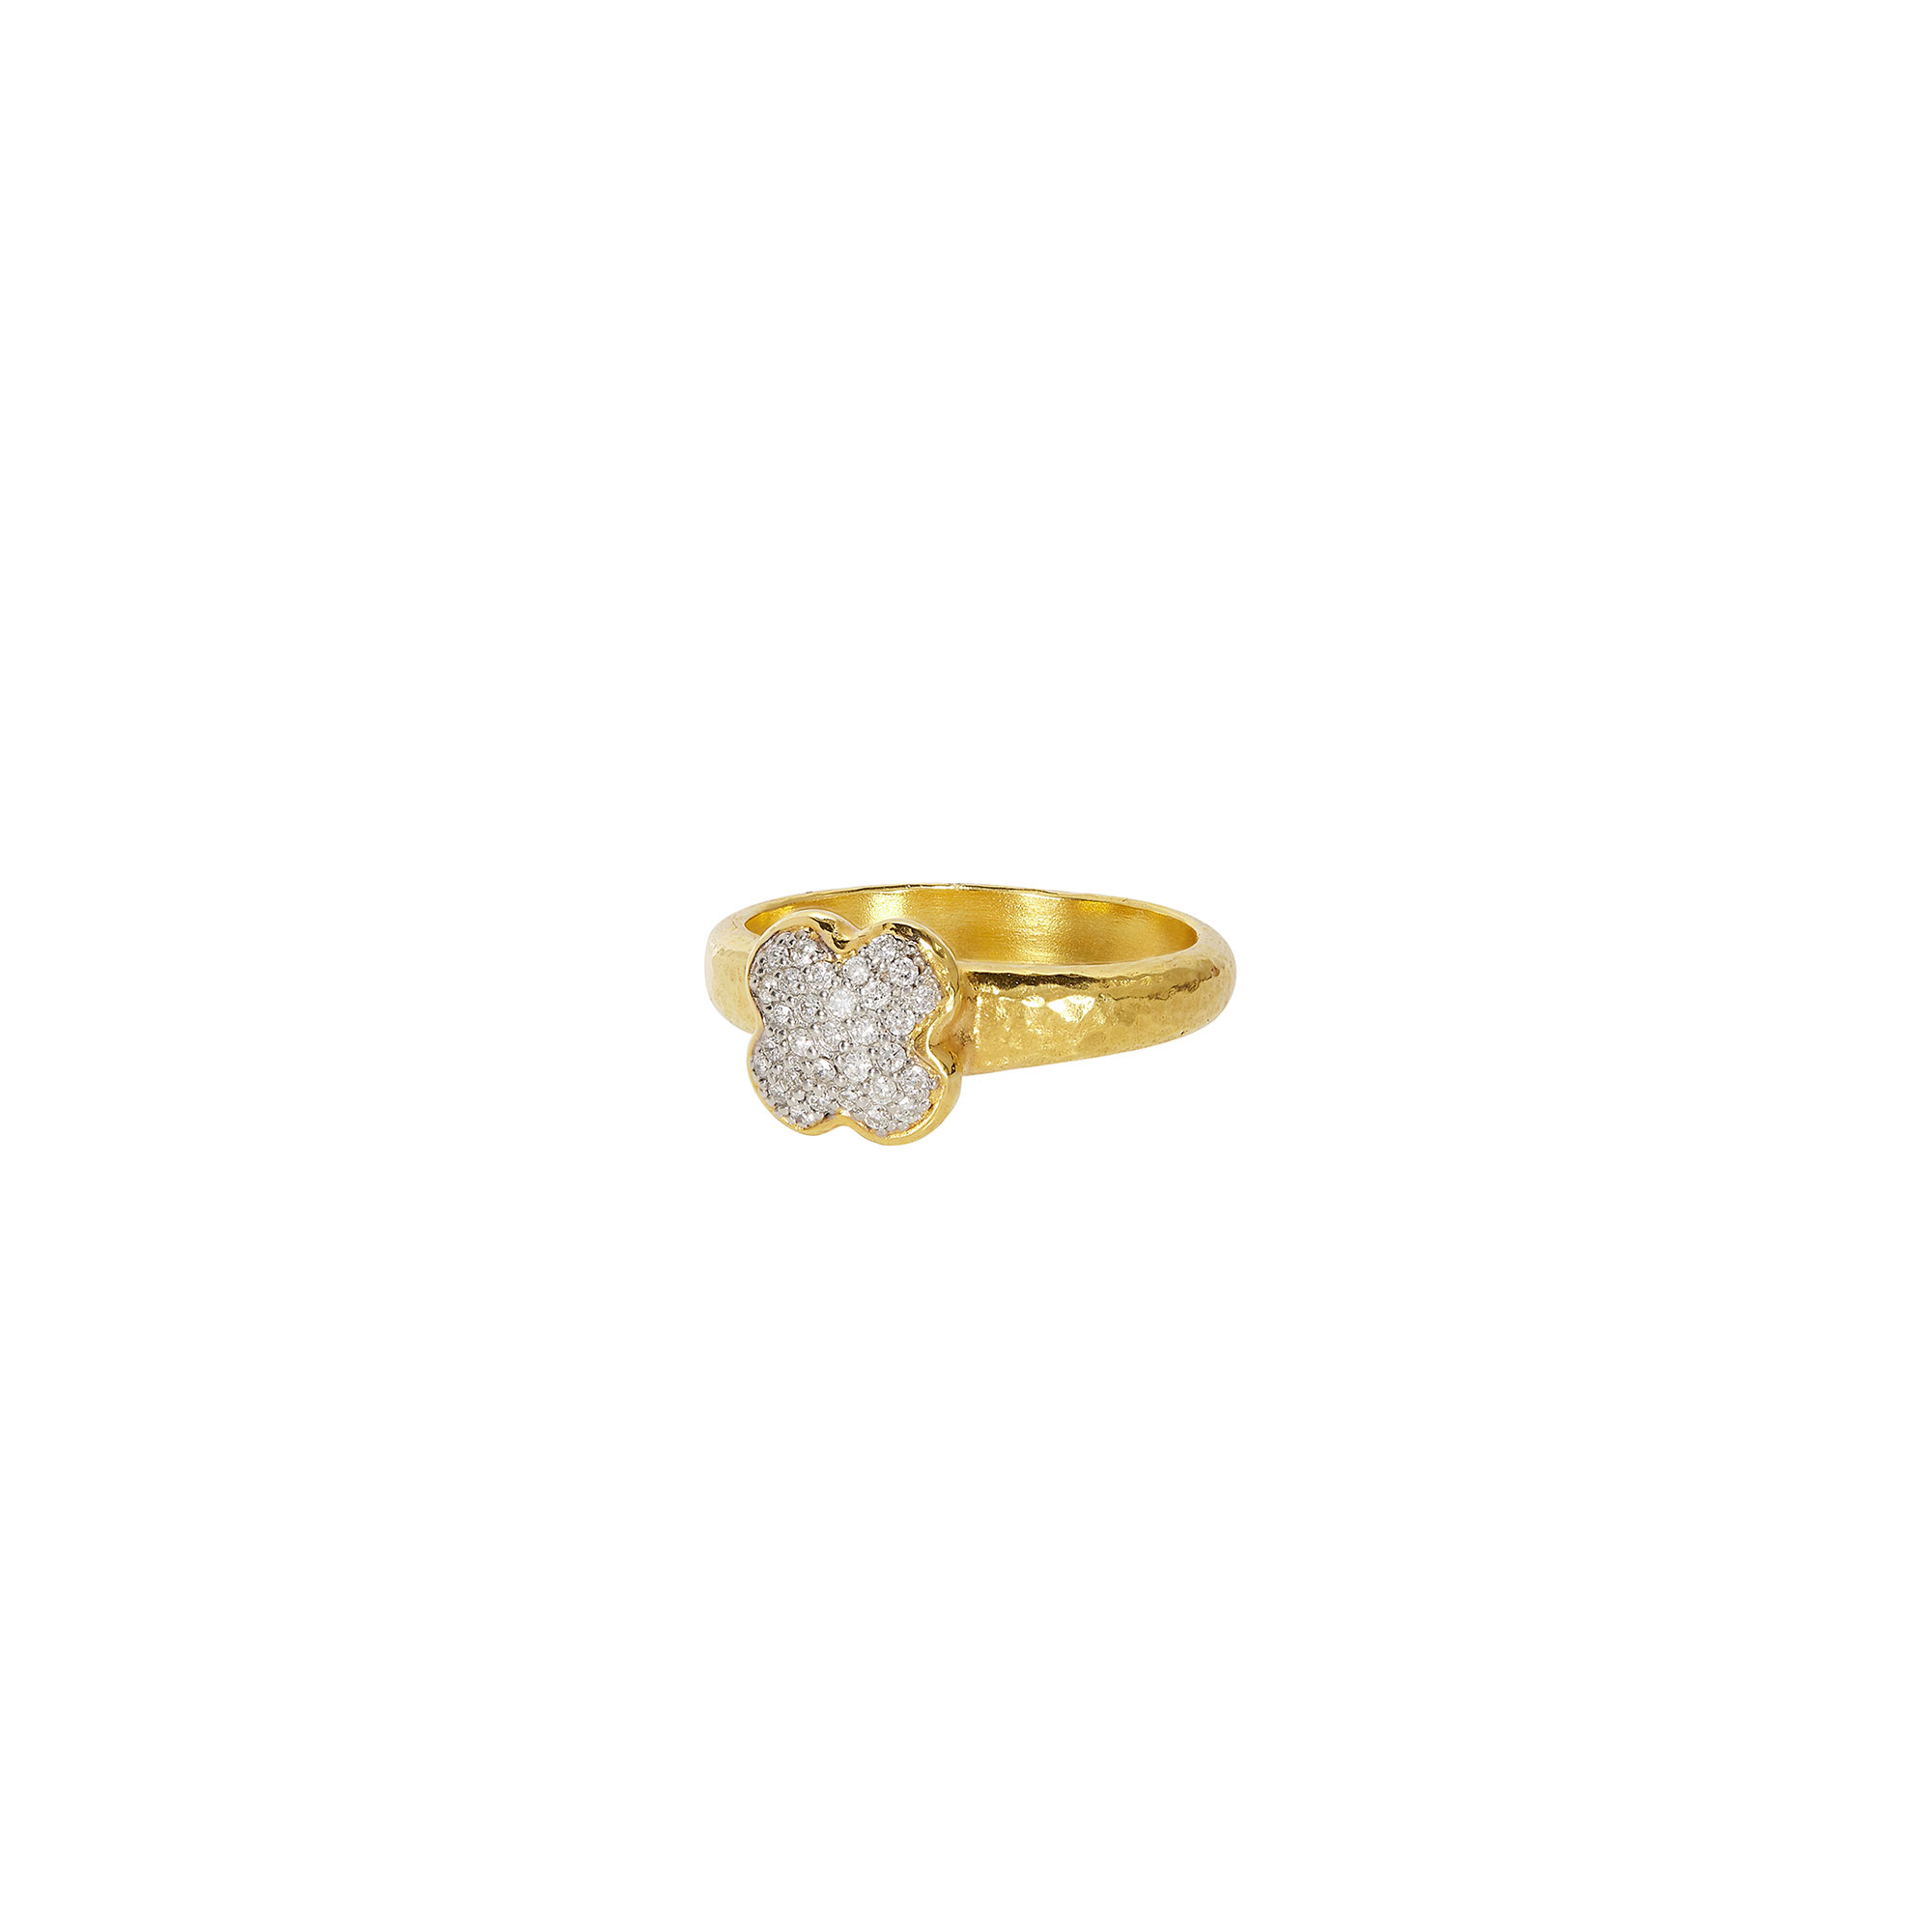 Gurhan 18-22K Yellow Gold .218cts White Diamond Gold Ring with Stones R-XPV-YB-S-DI